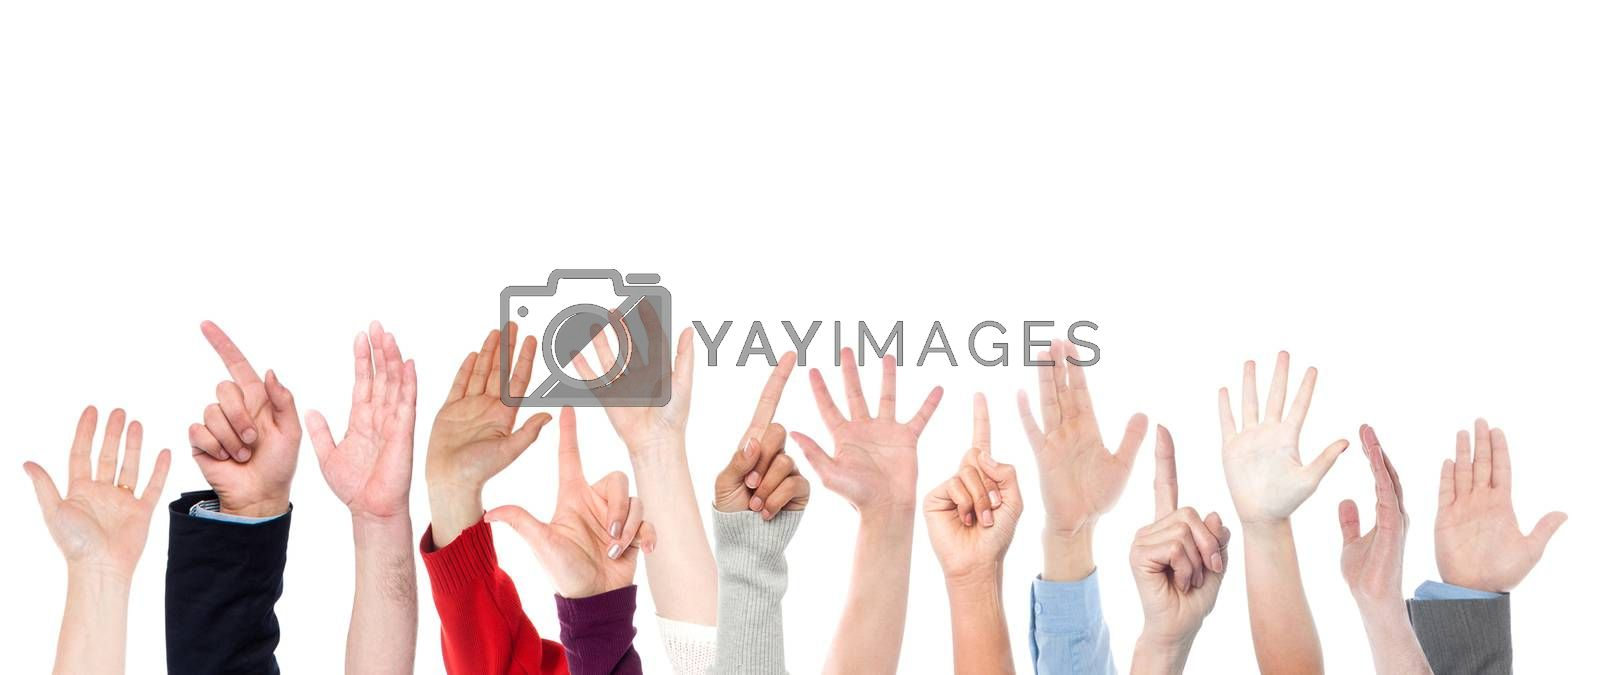 Hands raised up. Isolated over white background